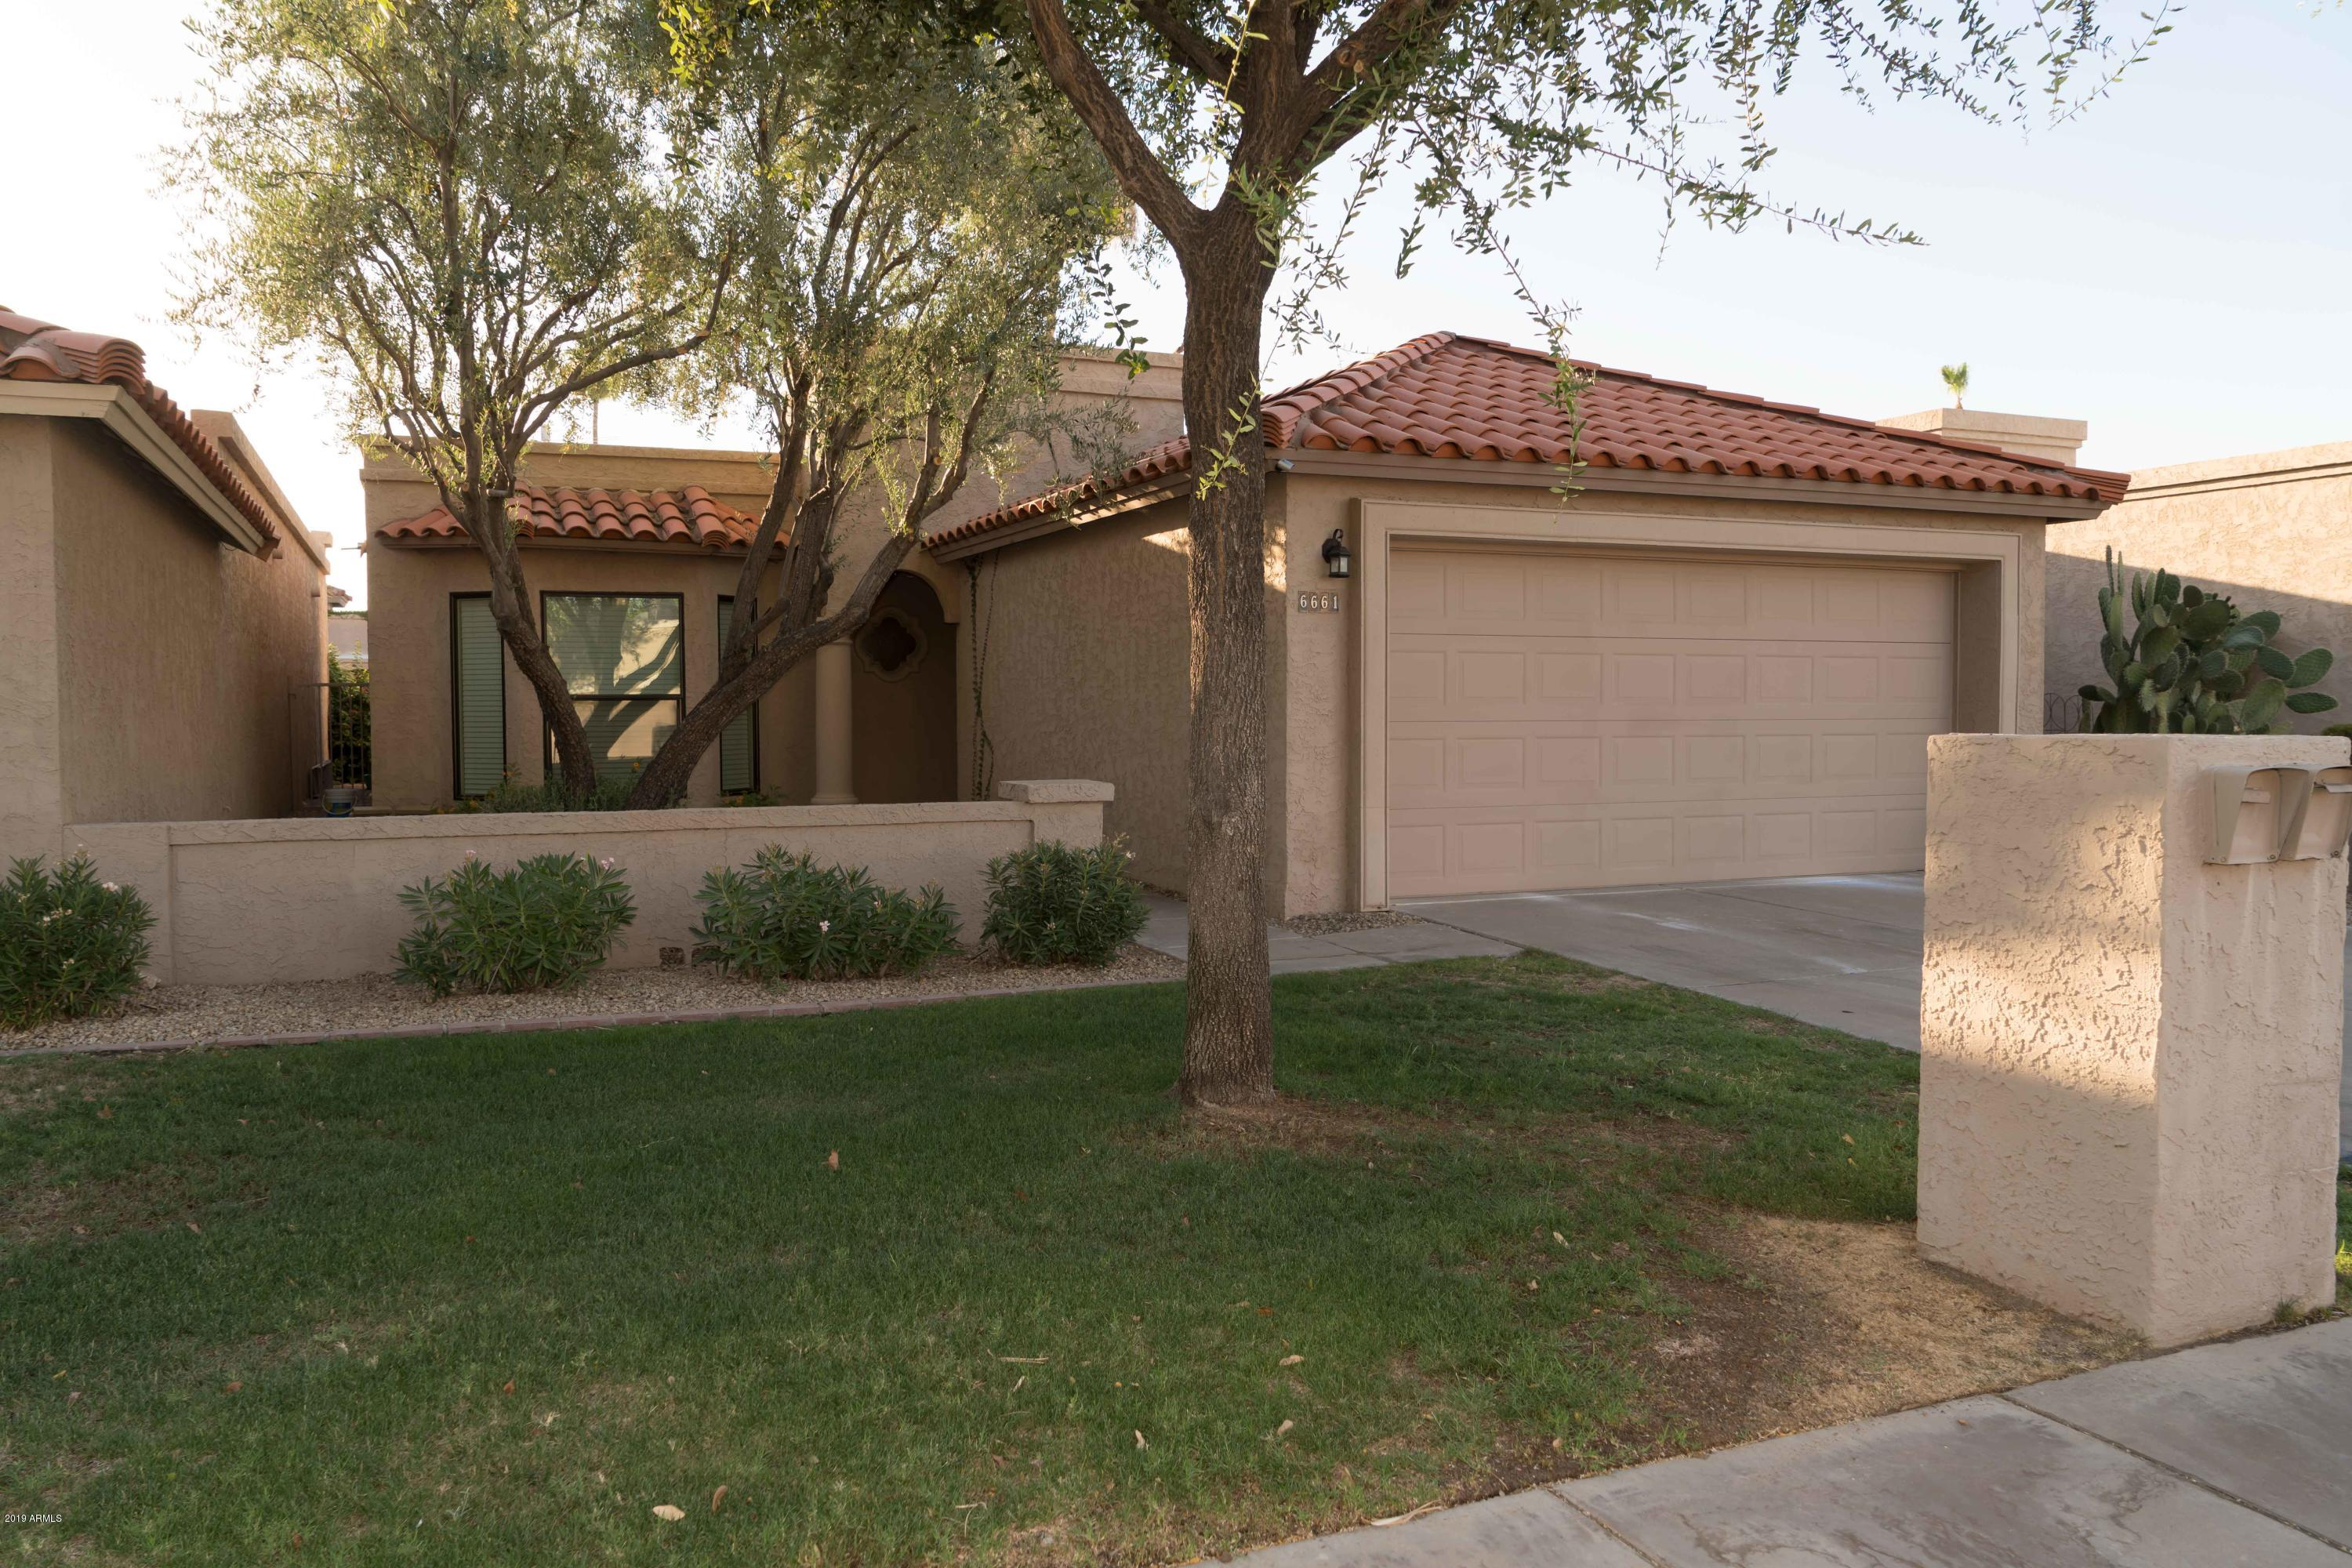 6661 N 78TH Place, Scottsdale AZ 85250